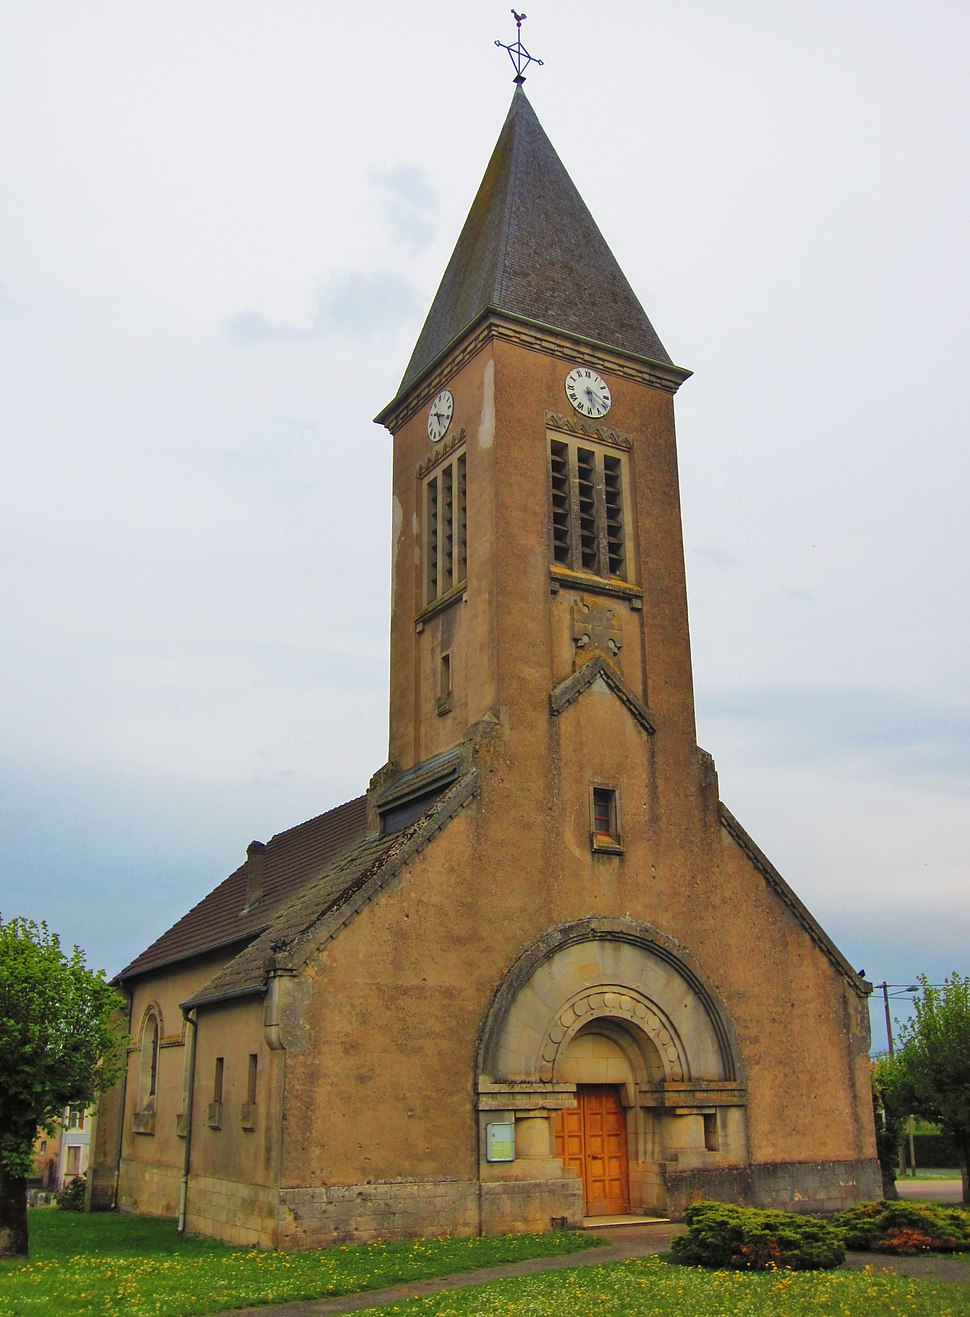 The church in Apremont-la-Forêt